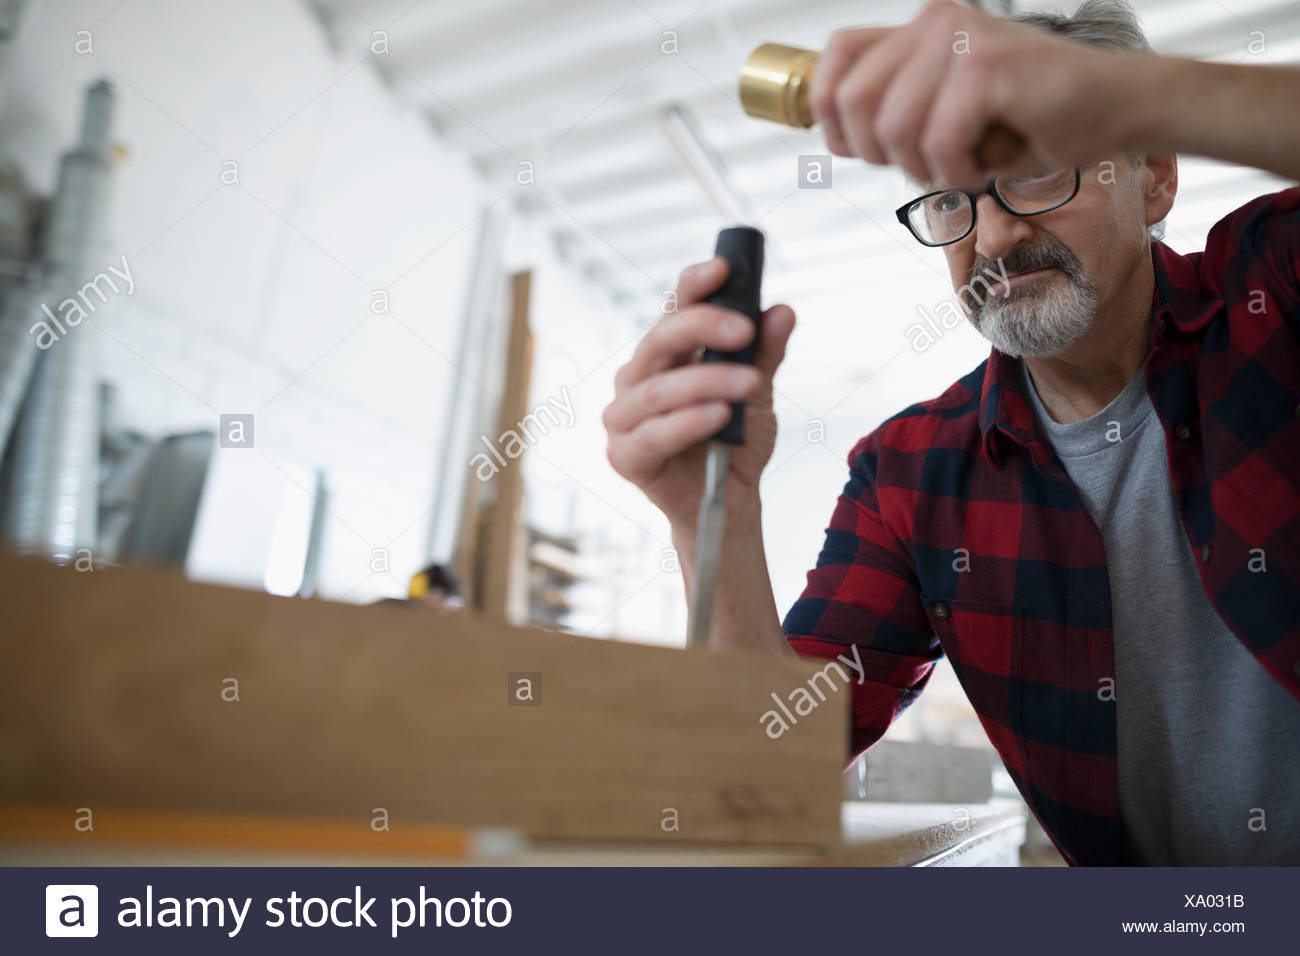 Male carpenter tapping chisel tool on wood block at workbench in workshop - Stock Image